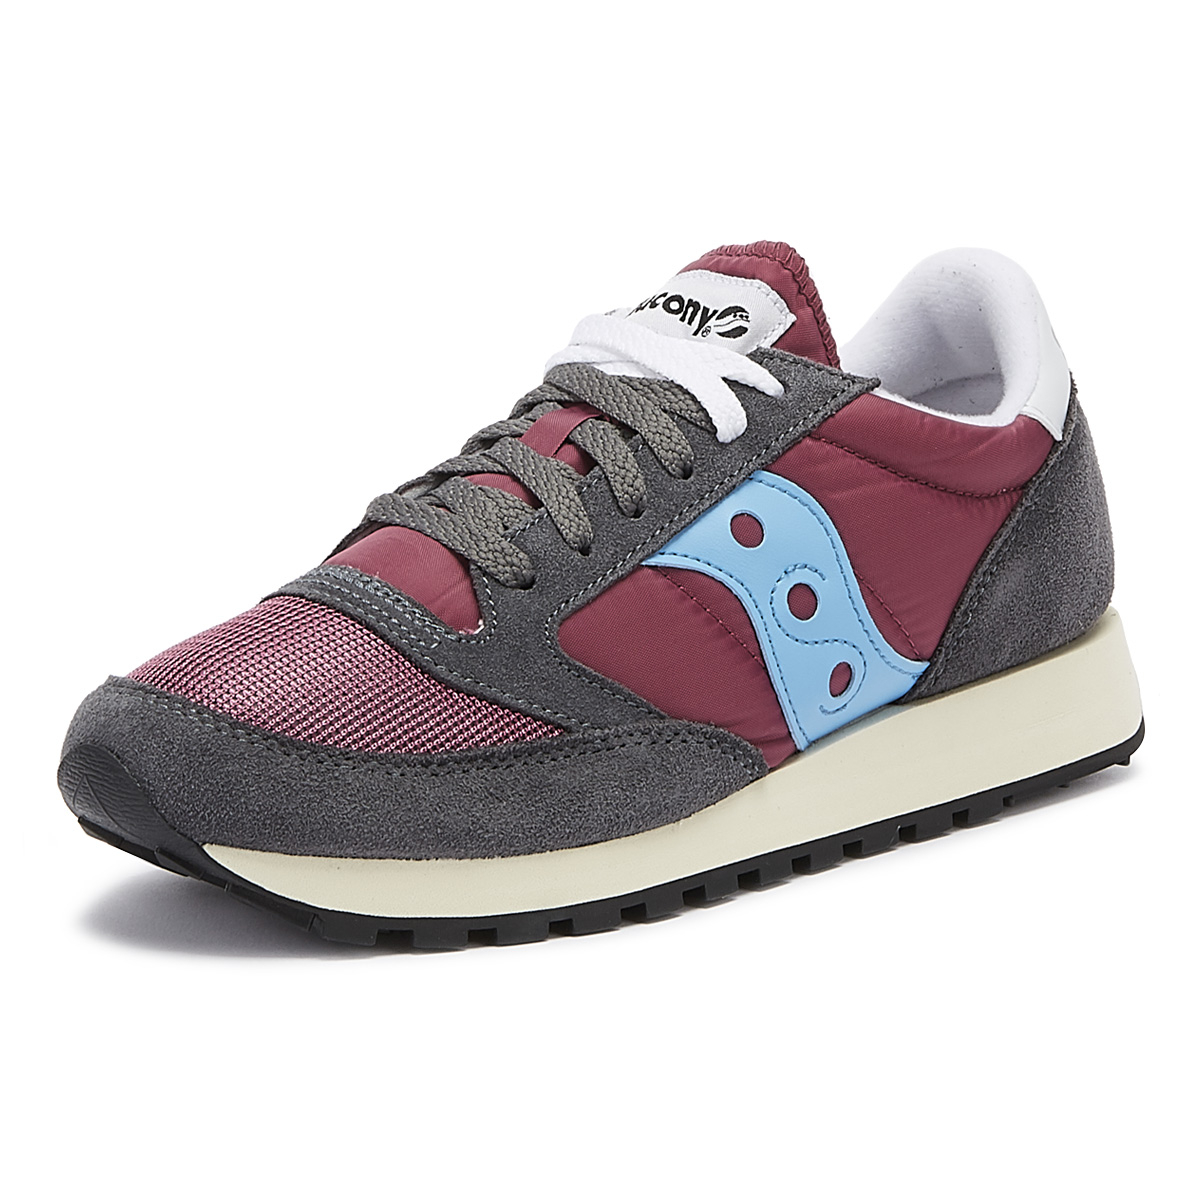 cda1f1d51a Details about Saucony Jazz Original Vintage Mens Purple / Grey / Blue  Trainers Casual Shoes